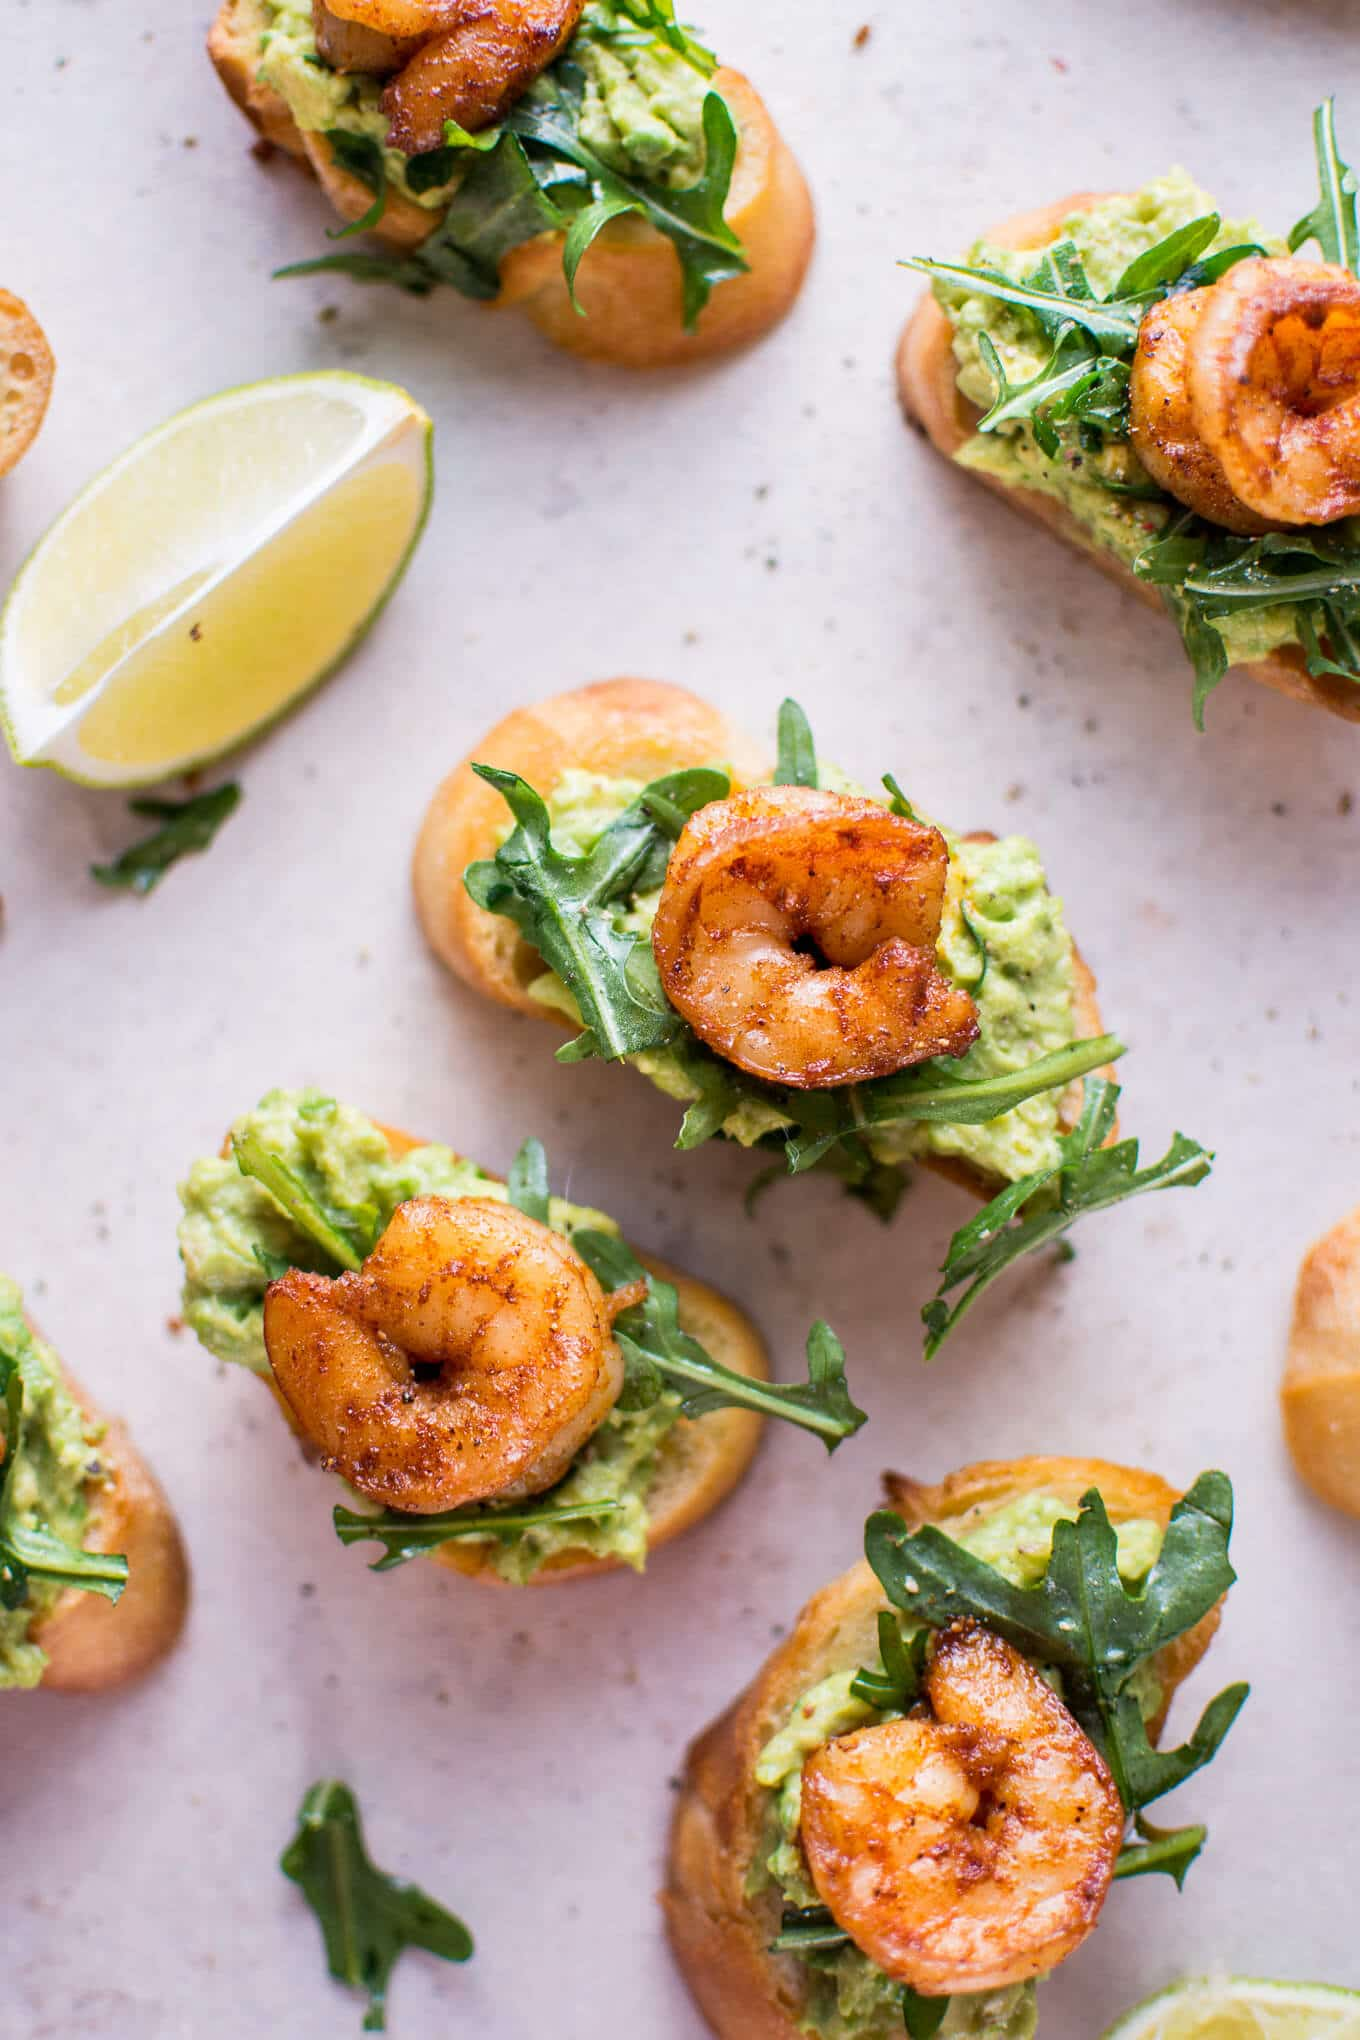 Garlic shrimp and avocado crostini are a fresh and delicious bite-size appetizer that will be a hit at any gathering or party!